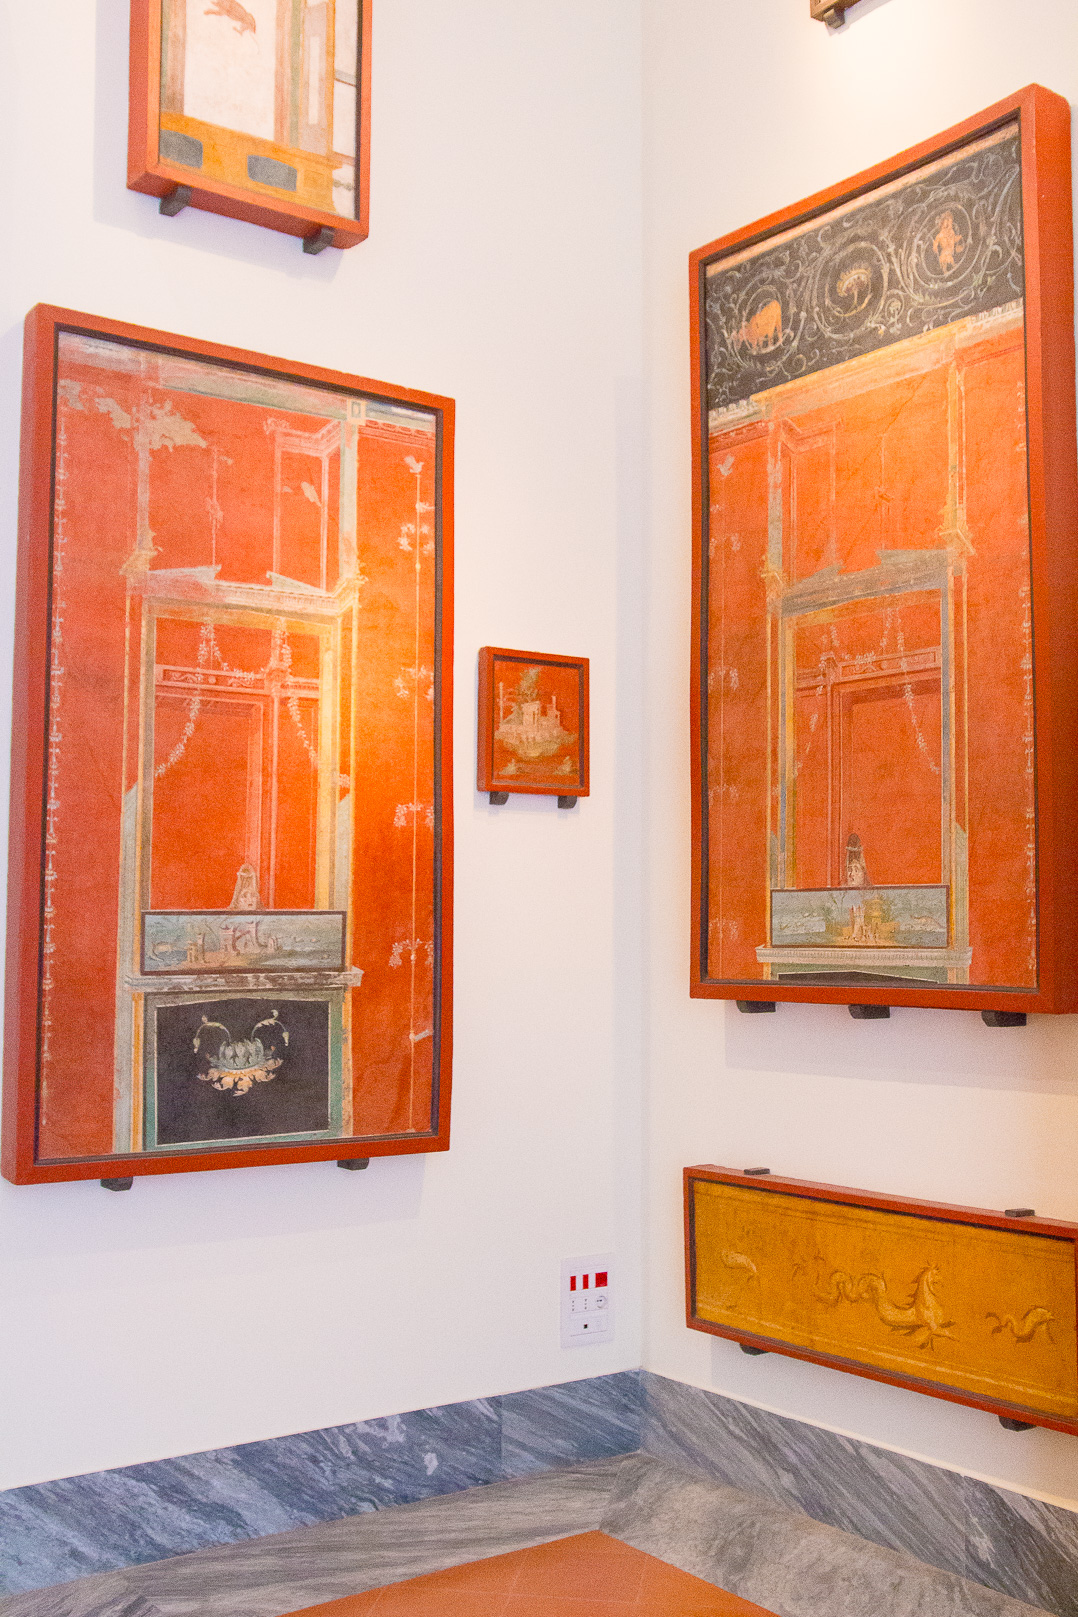 The Archaeological Museum of Naples.